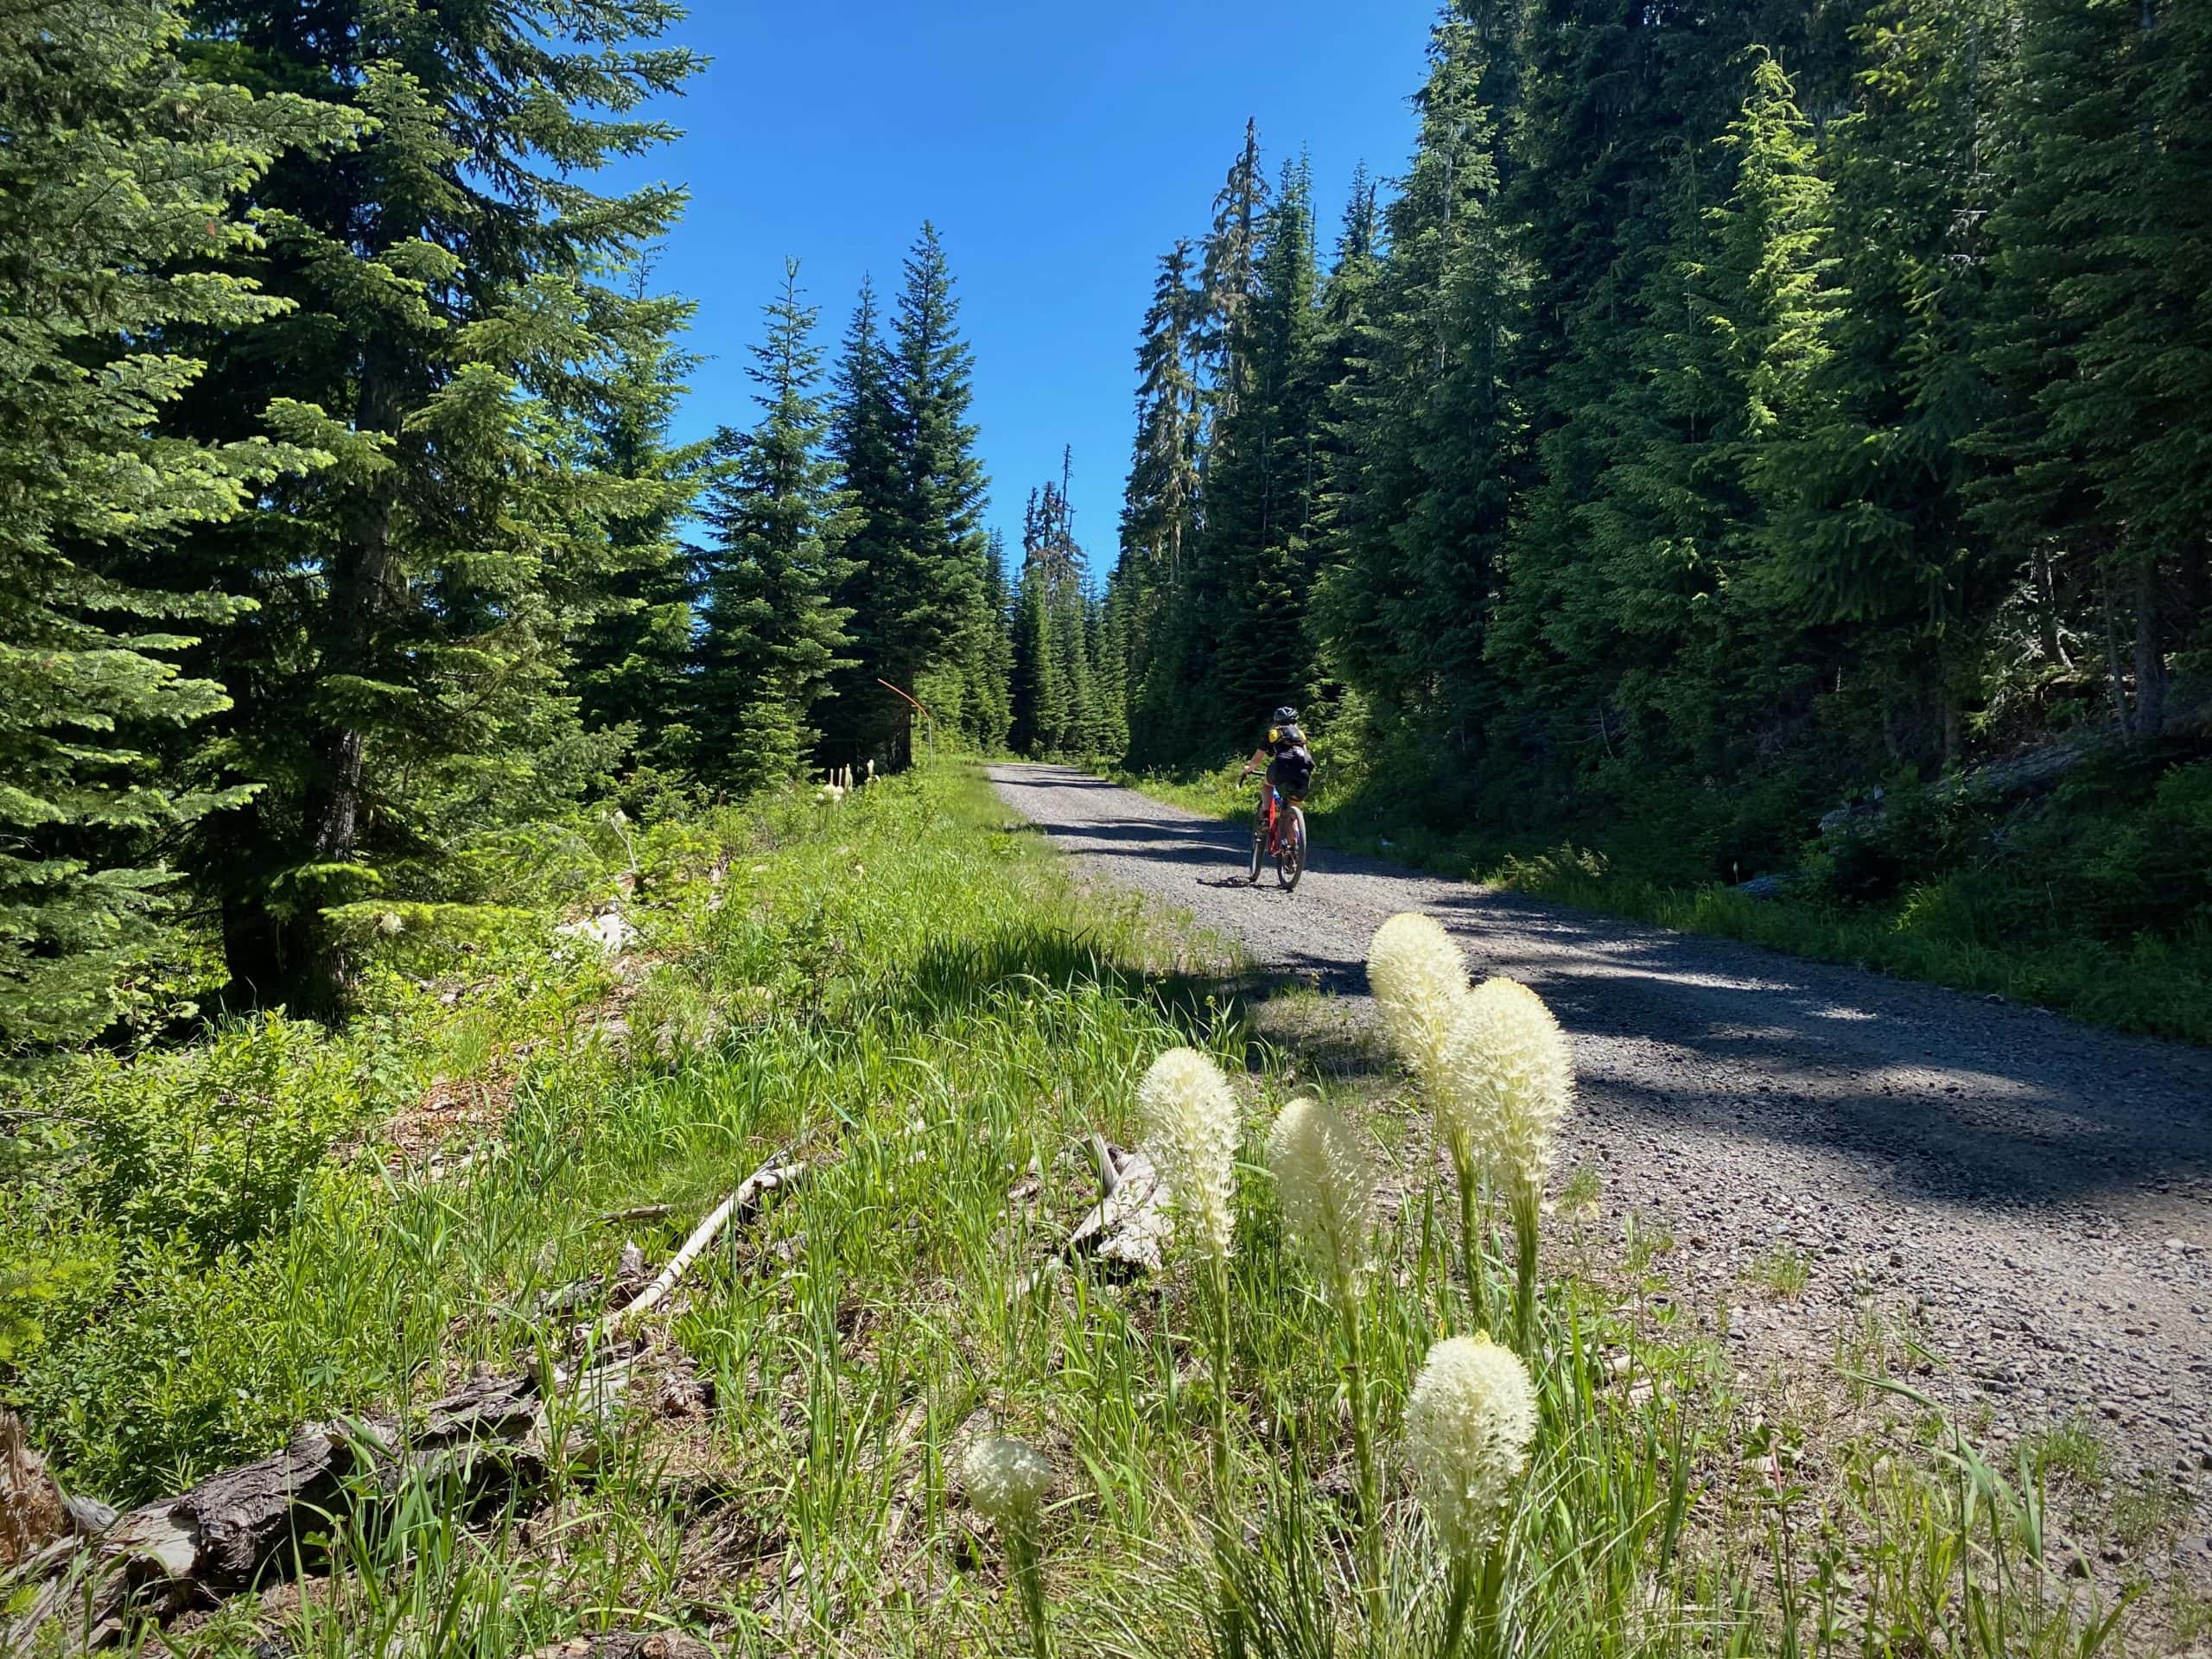 Bike rider on gravel road in the Willamette National Forest with white bear grass in the foreground.